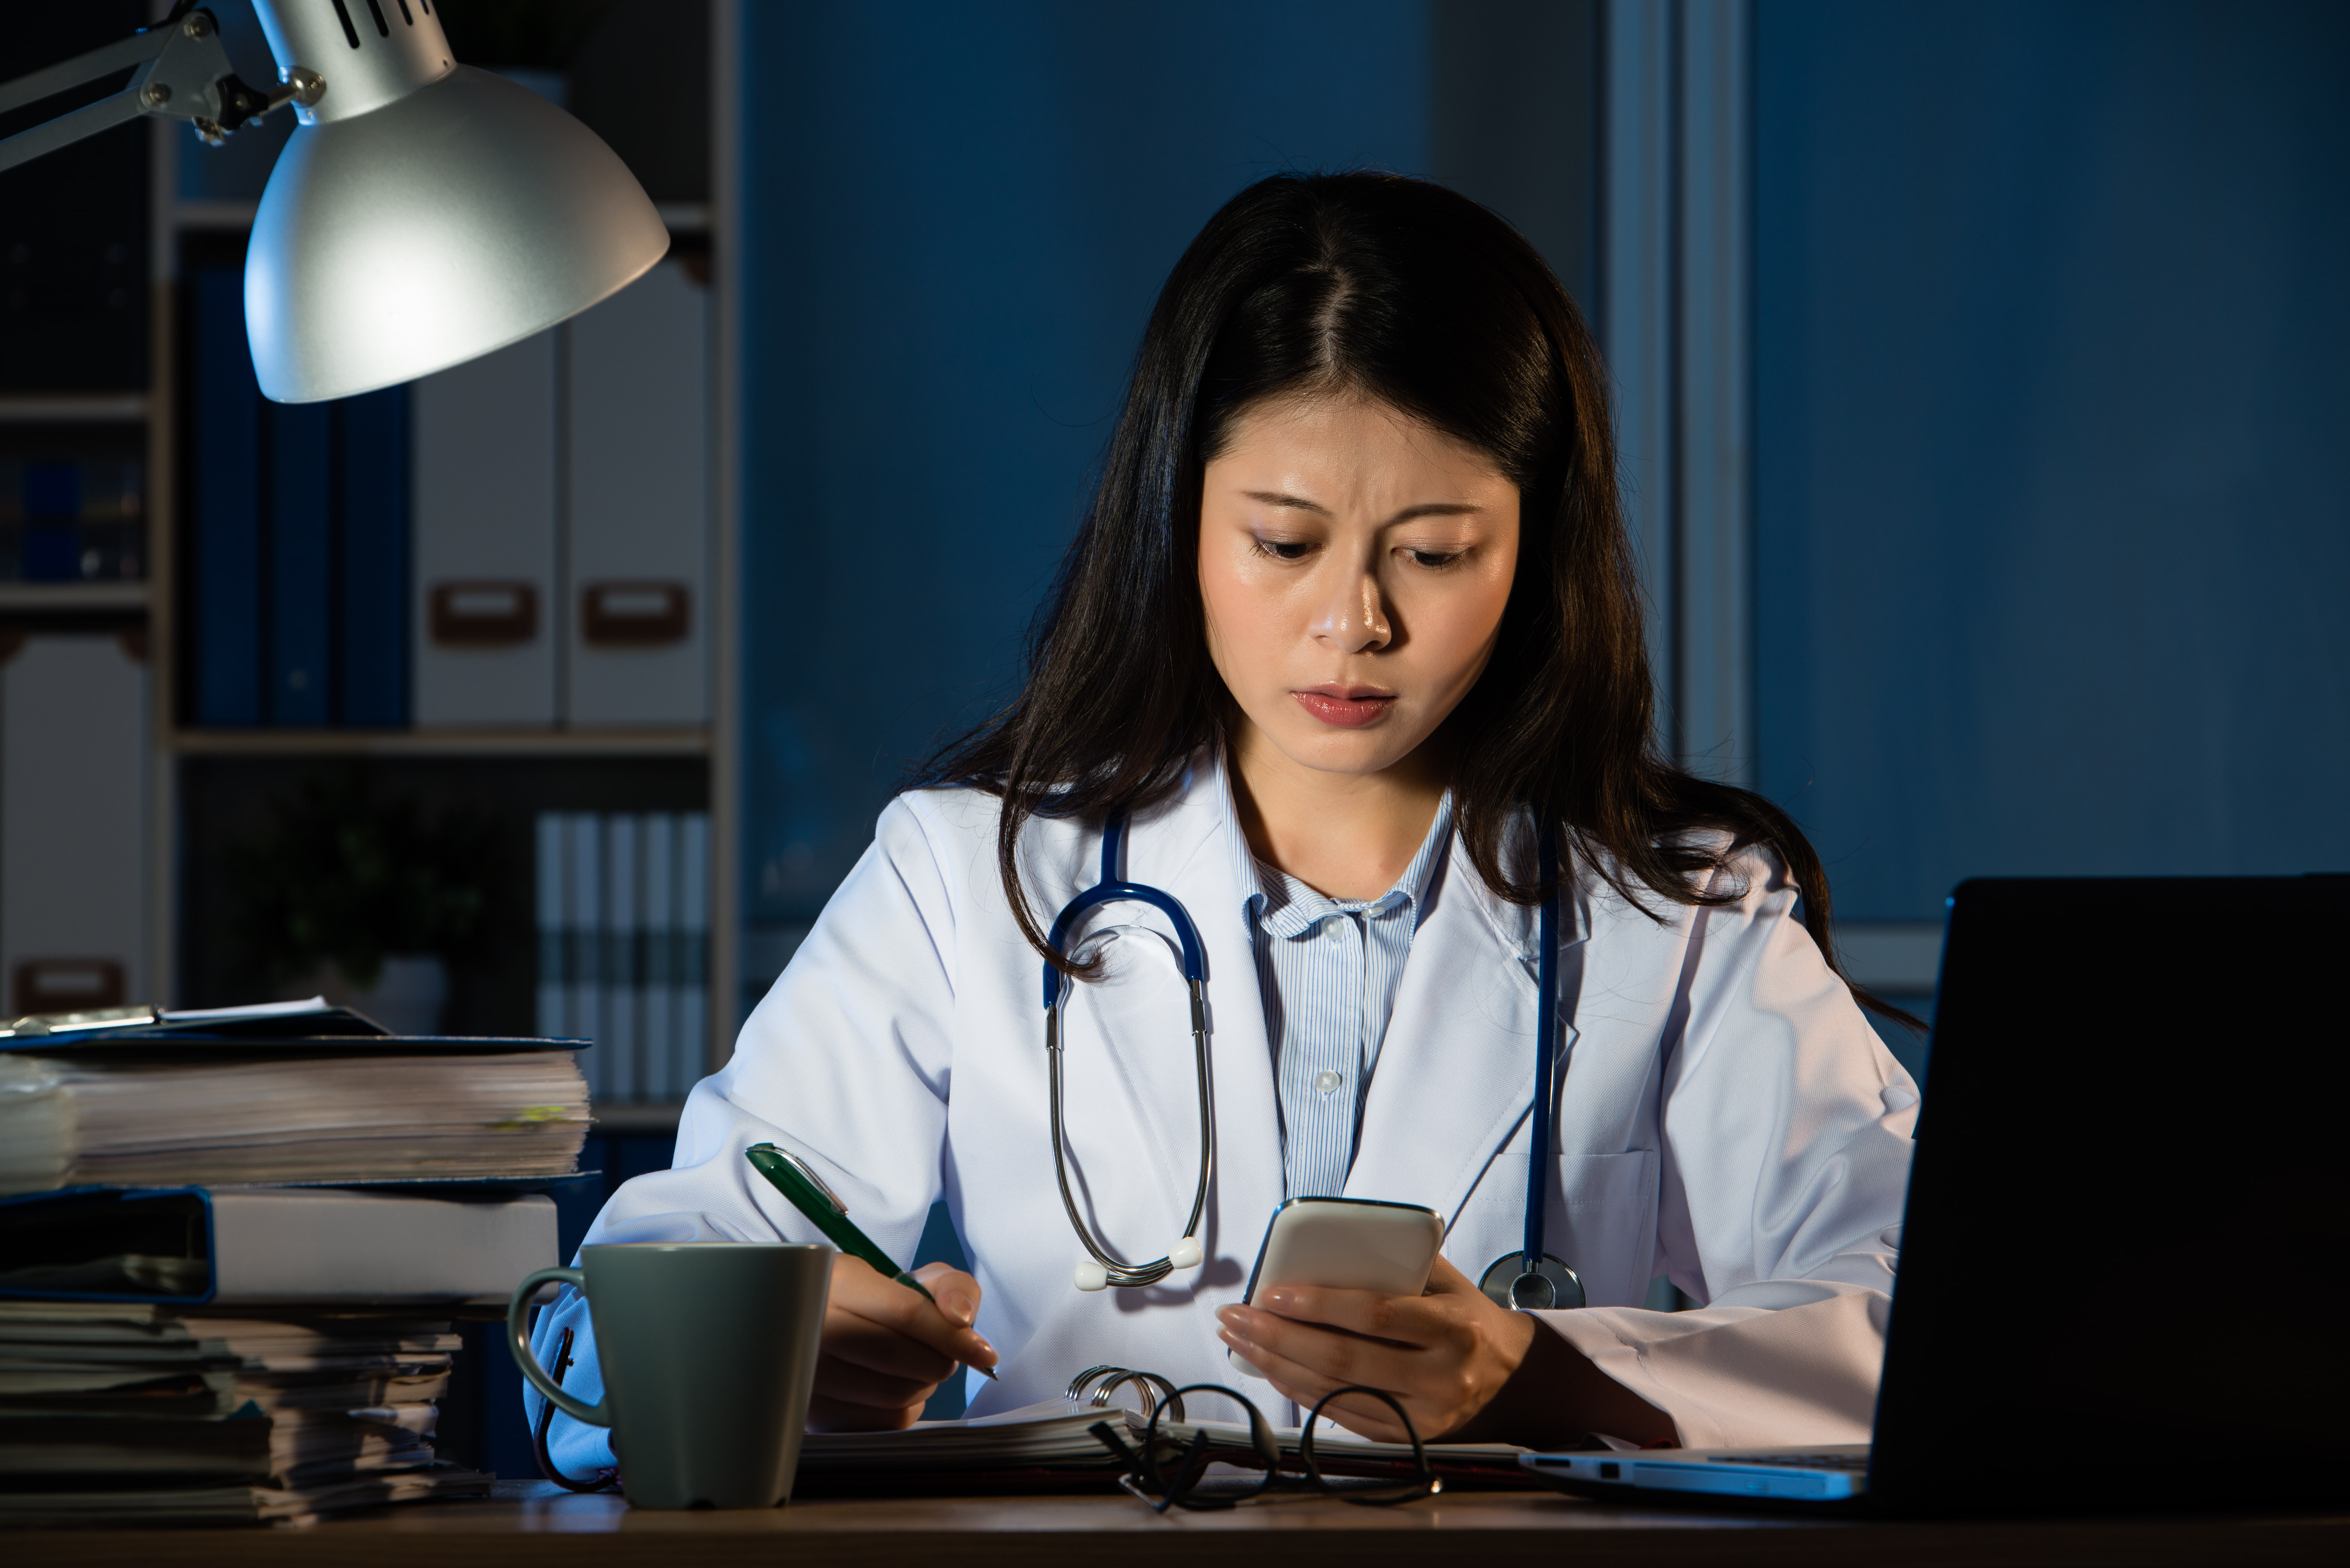 Poor call management leads to misdirected calls, frustrated patients, and overwhelmed office staff.